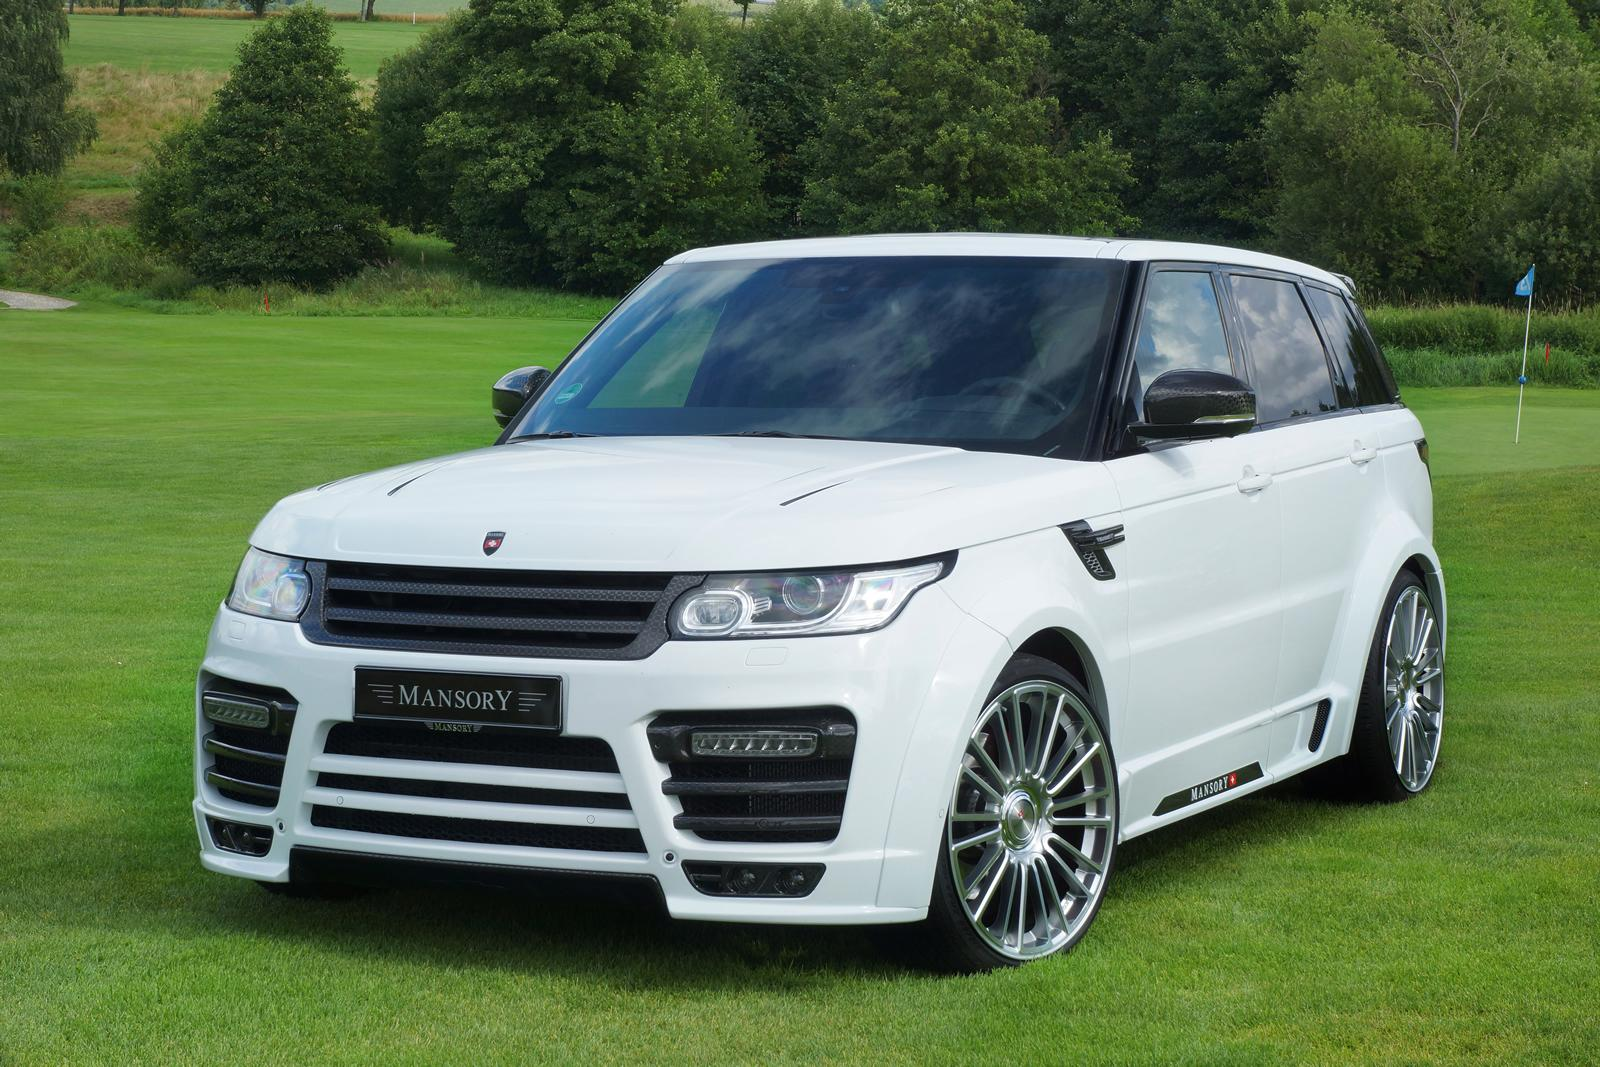 2014 Land Rover Range Rover Sport By Mansory | Top Speed. »